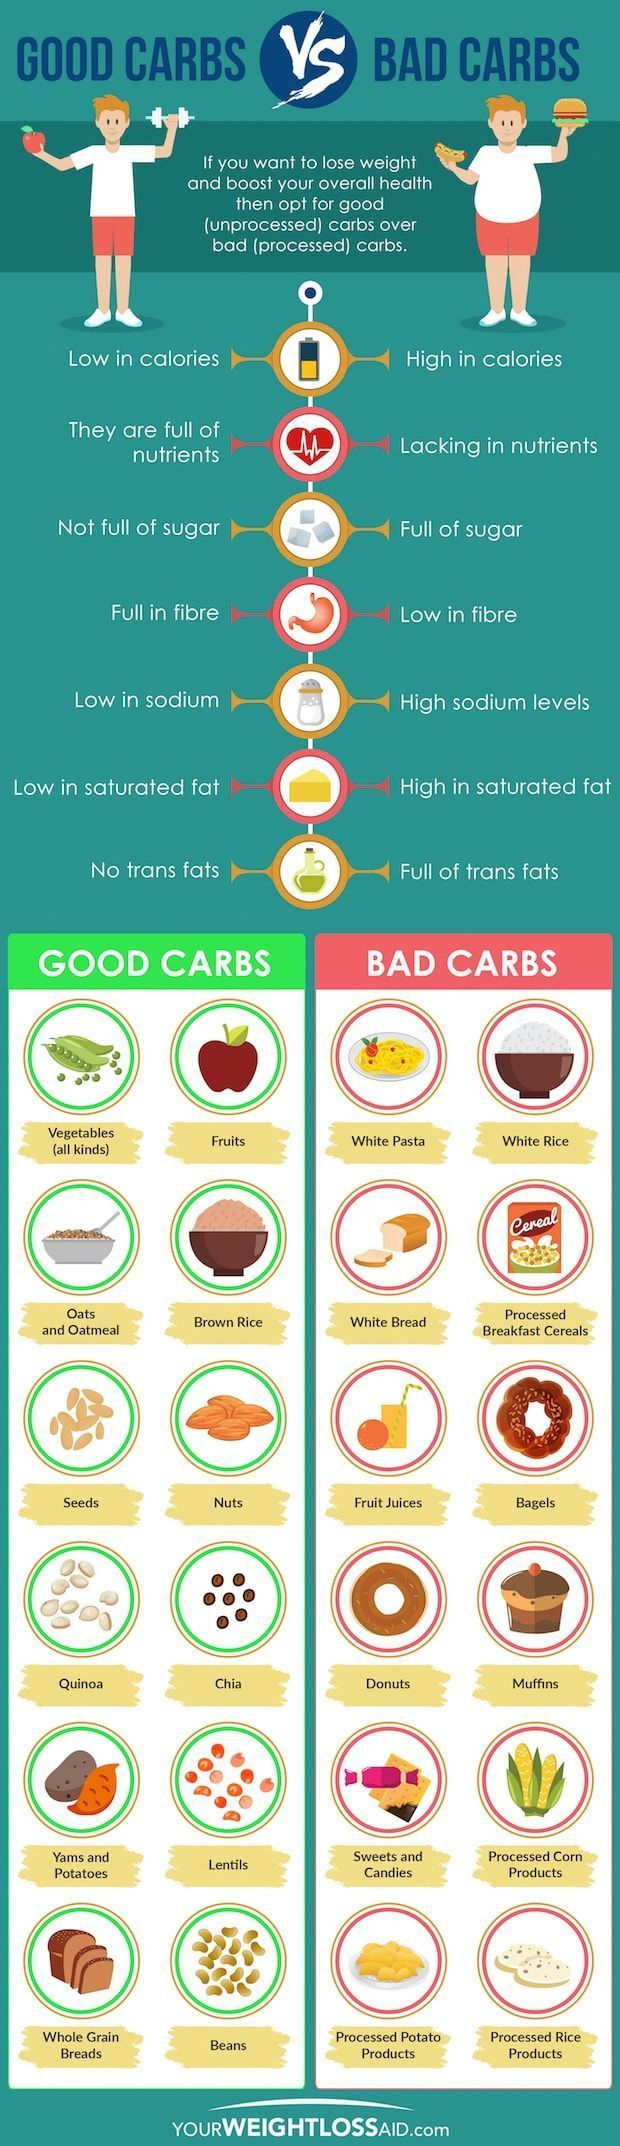 Good Carbs vs Bad Carbs - To #loseweight and achieve your #weightloss goals you should opt for good unprocessed carbs over bad processed carbs.